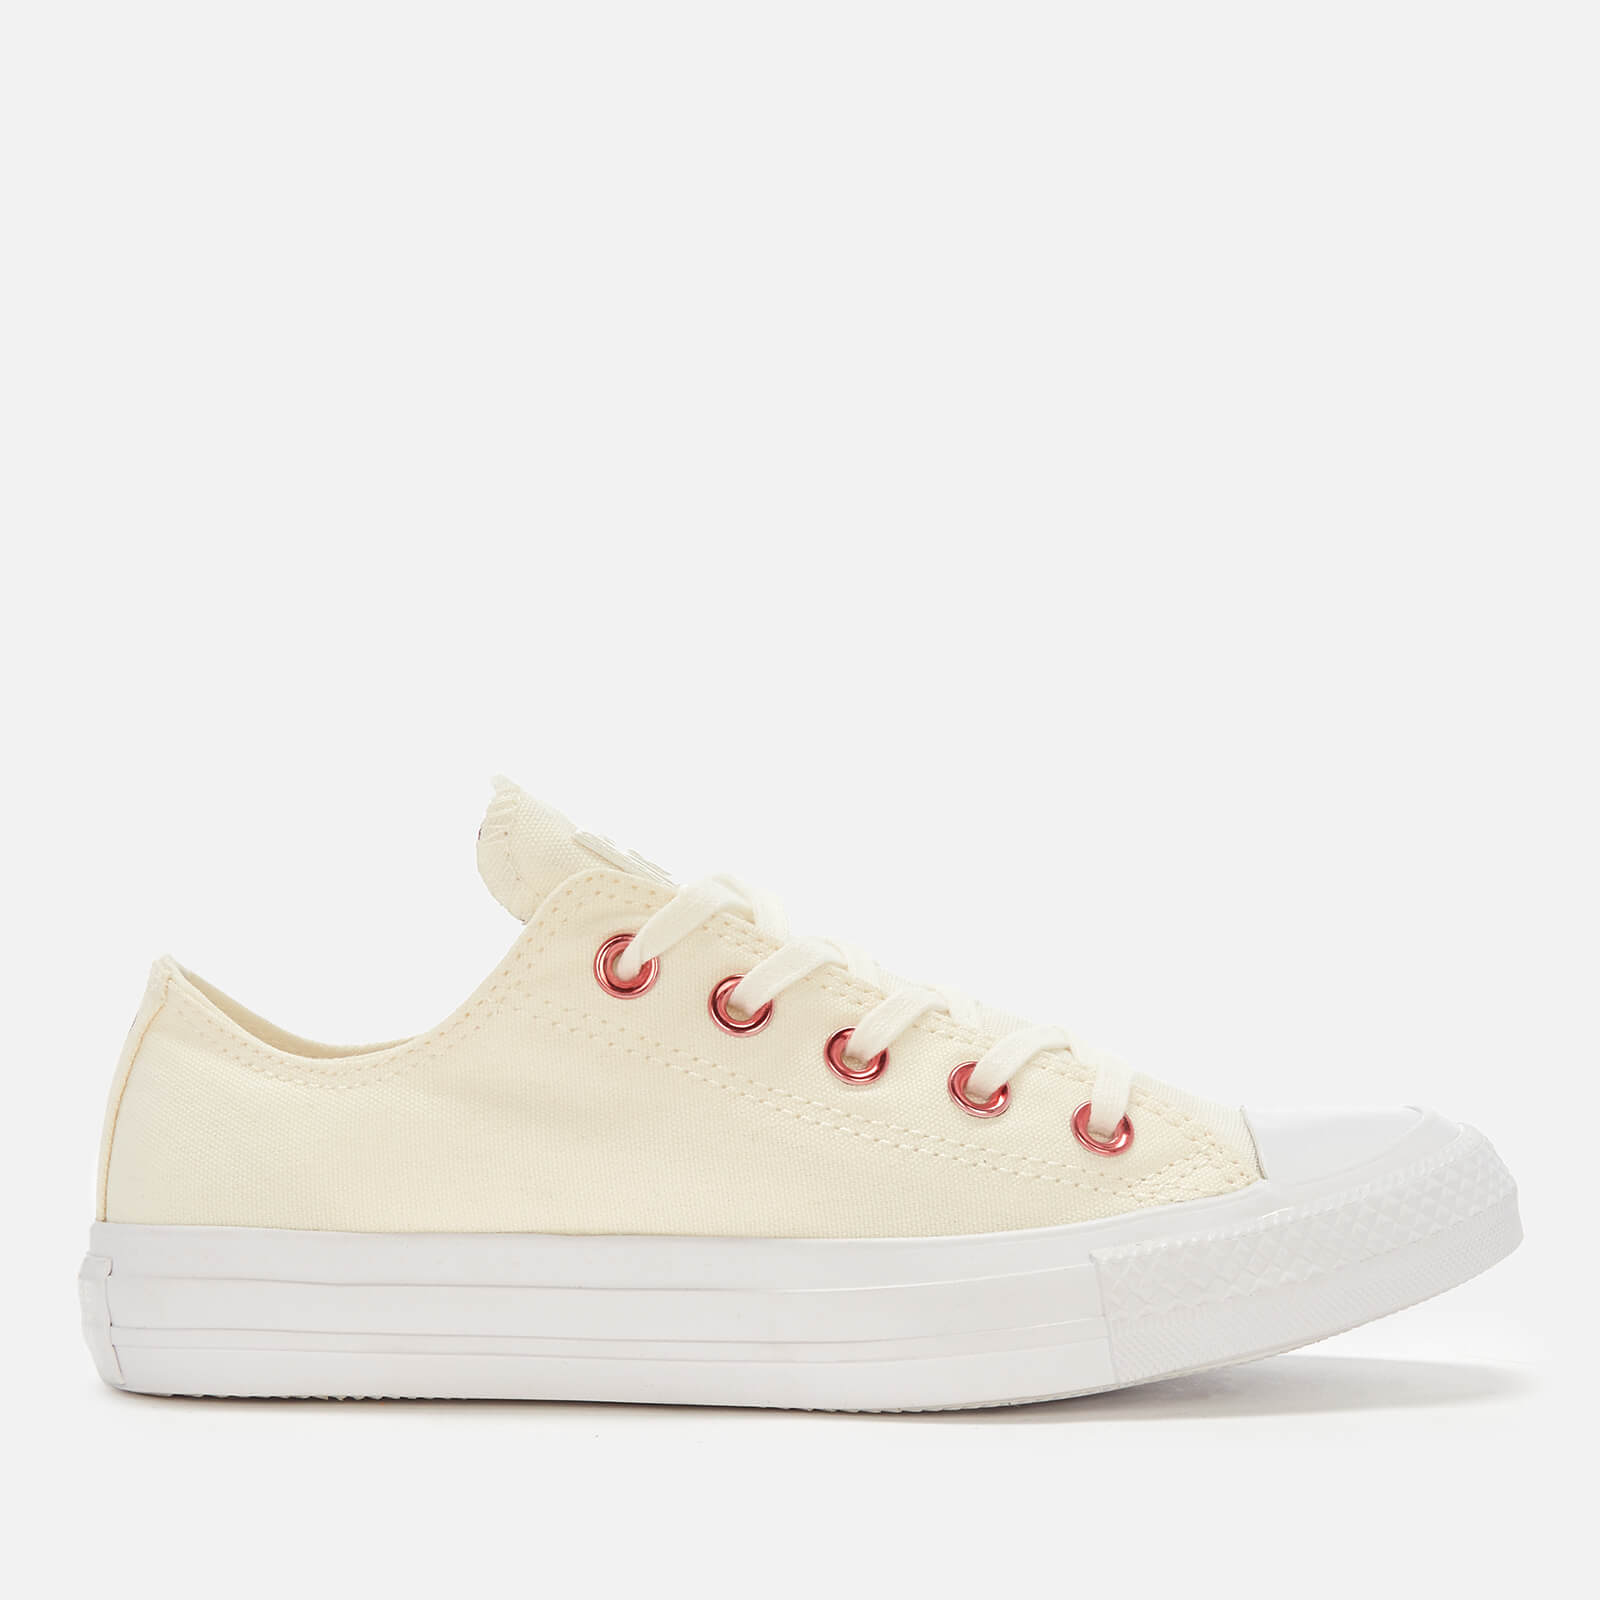 ef878b9f5318e3 Converse Women s Chuck Taylor All Star Ox Trainers - Egret Rhubarb White  Womens Footwear